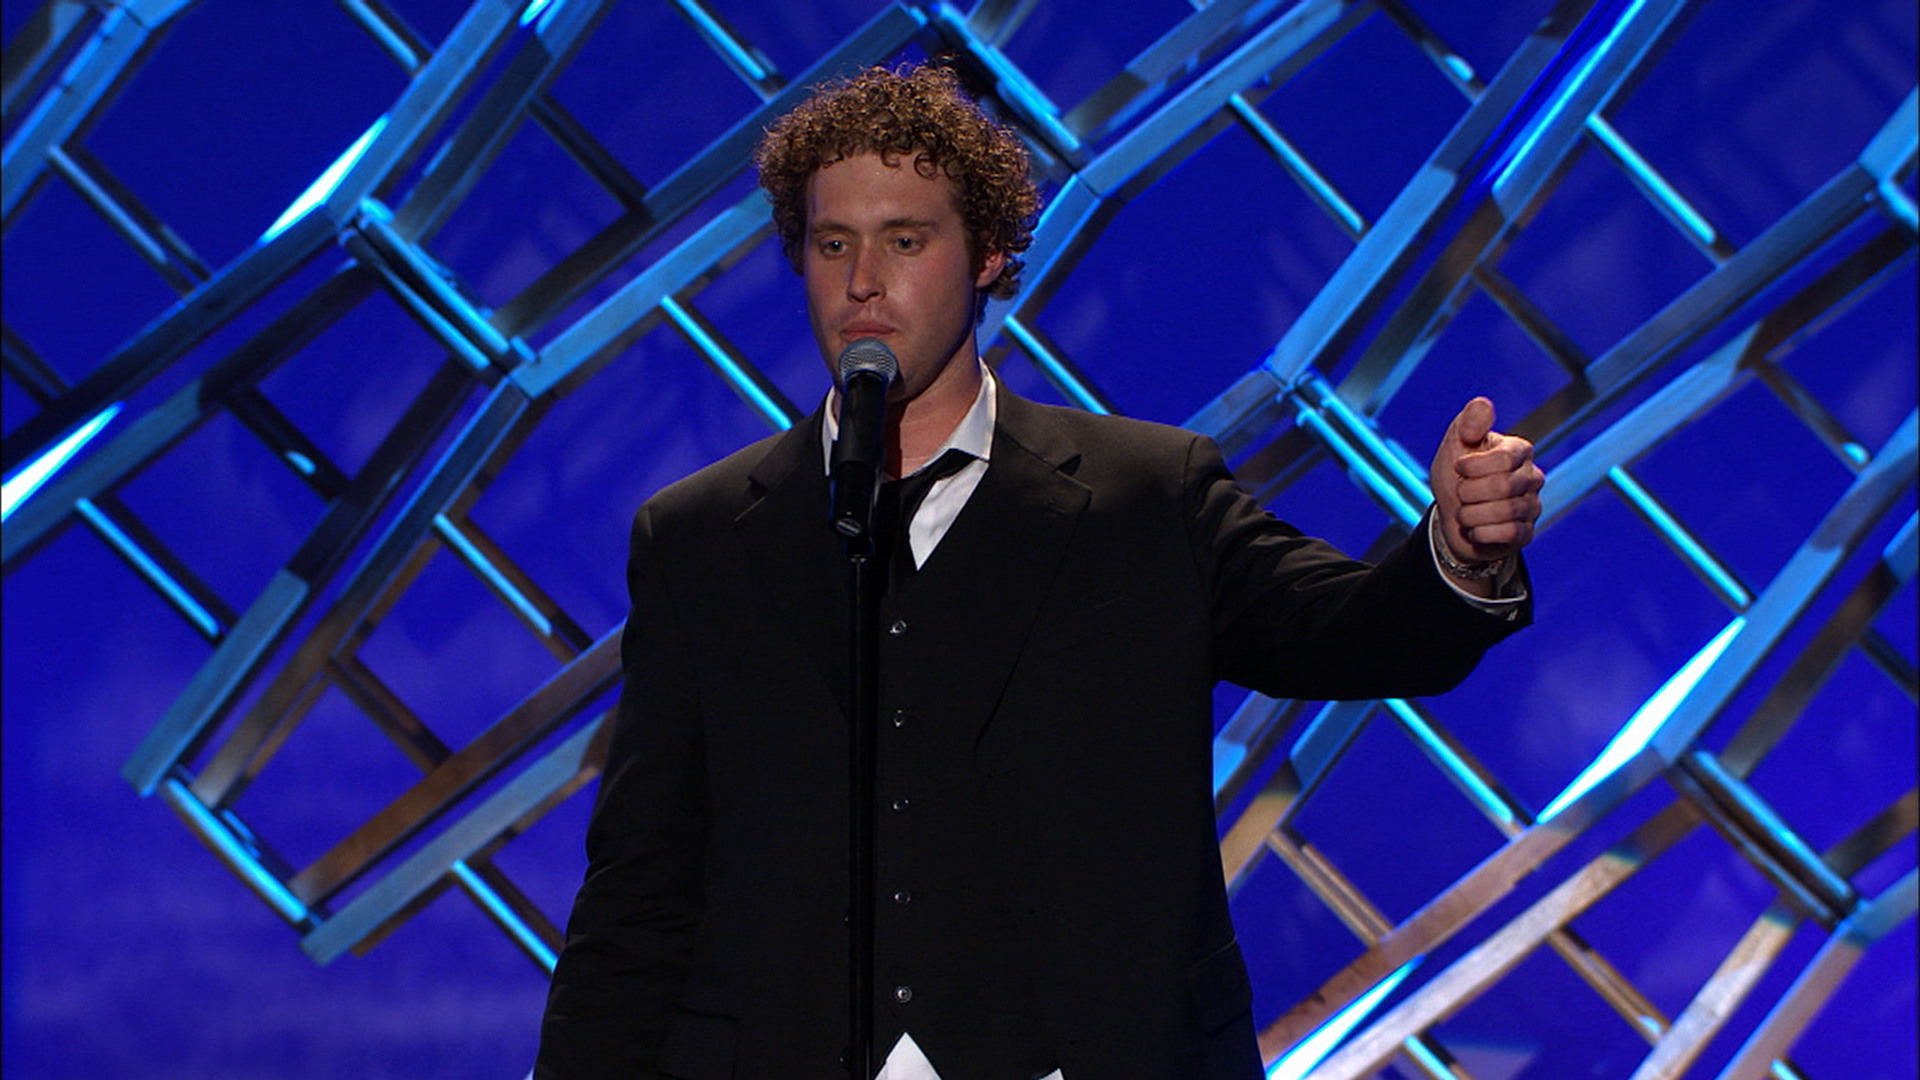 T.J. Miller - Do Your Thing